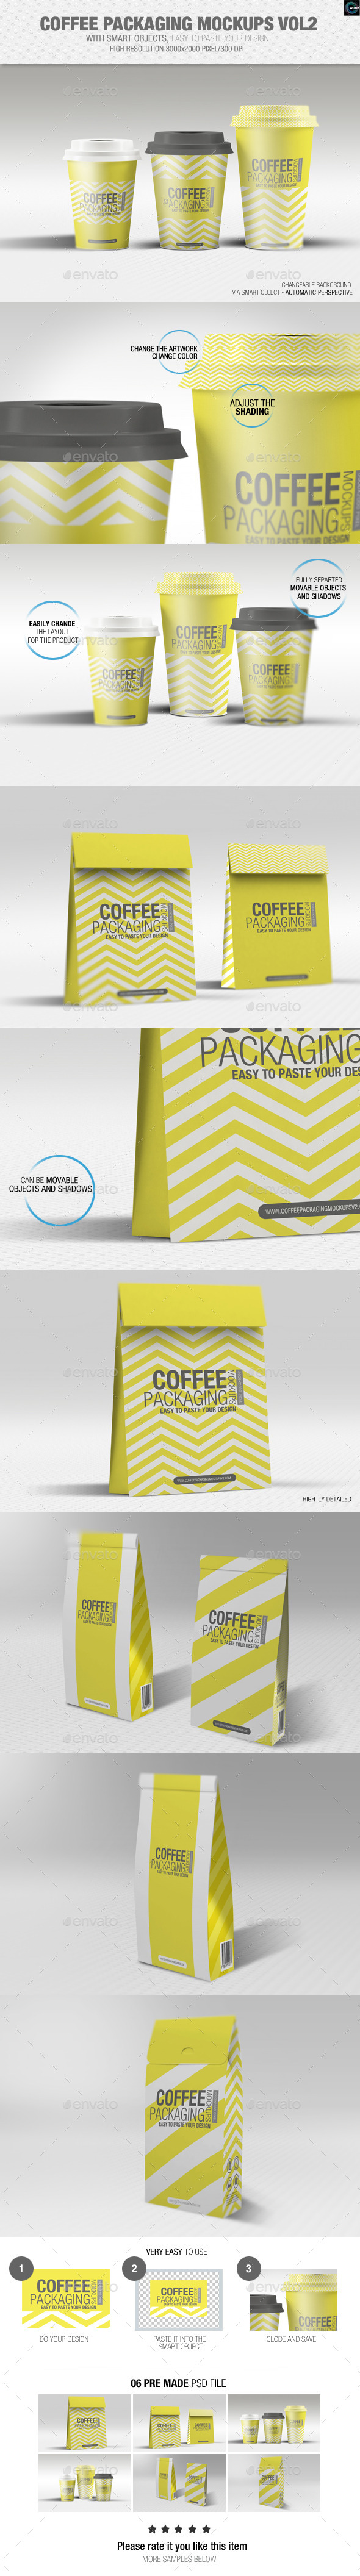 GraphicRiver Coffee Packaging Mockups Vol2 8898448